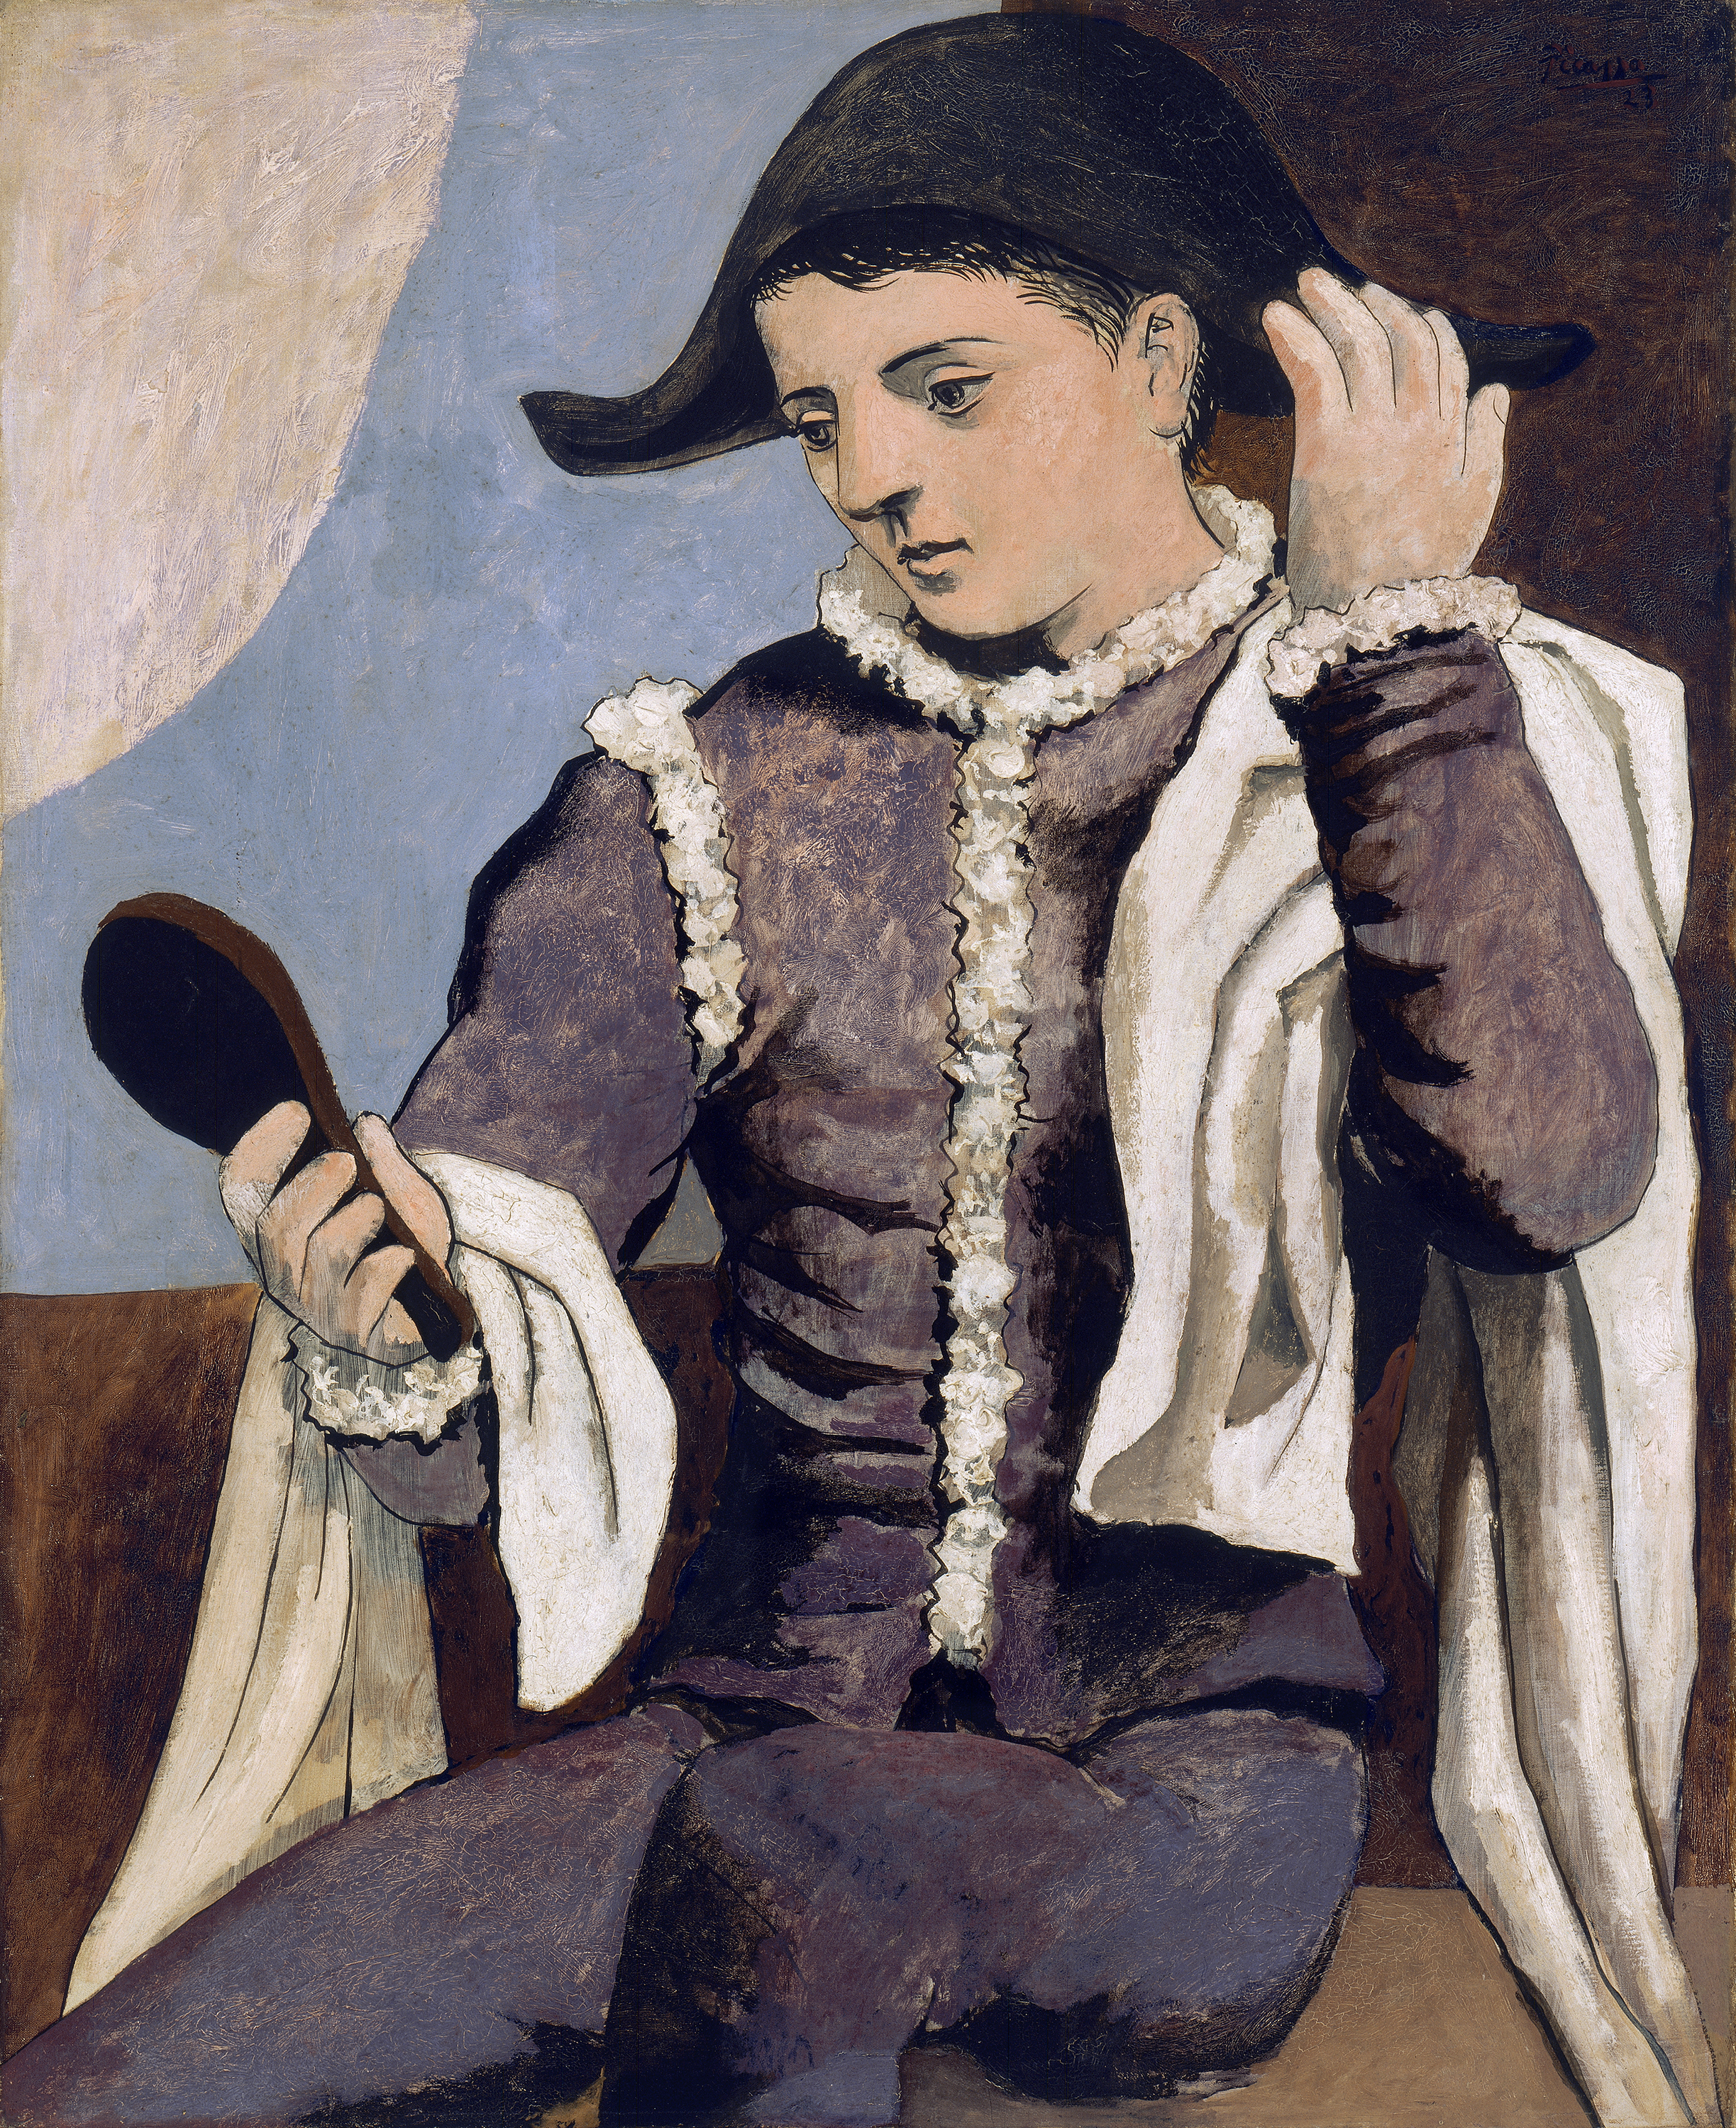 Harlequin with a Mirror - Picasso, Pablo | Museo Nacional Thyssen ...